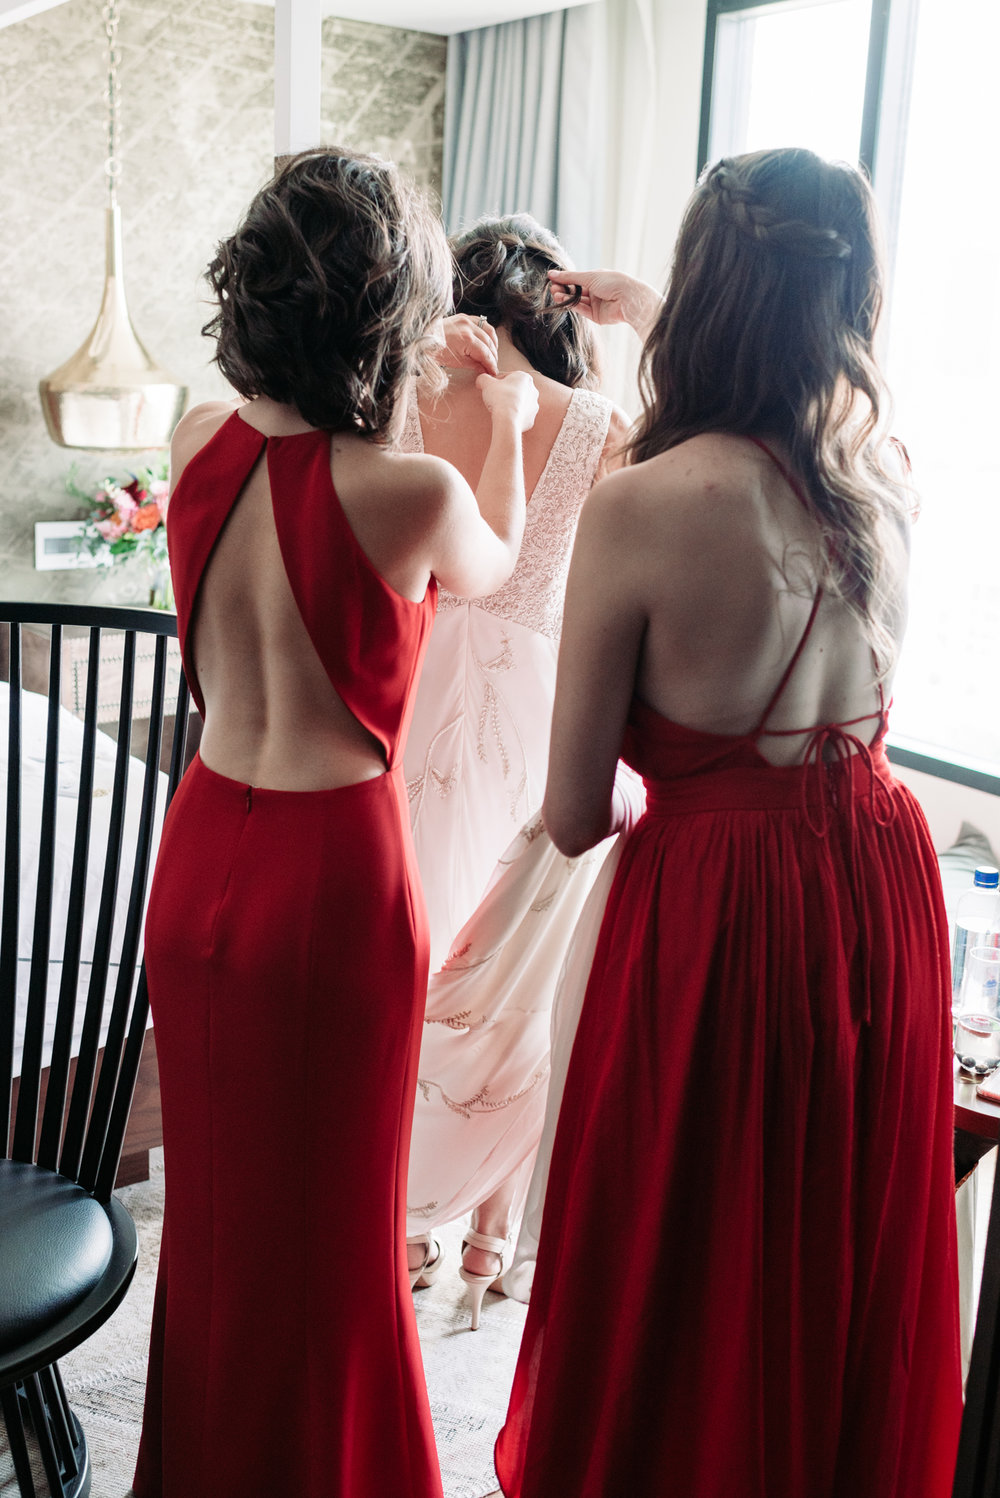 Bridesmaid Bennett Brown photography wedding bridal gown bride